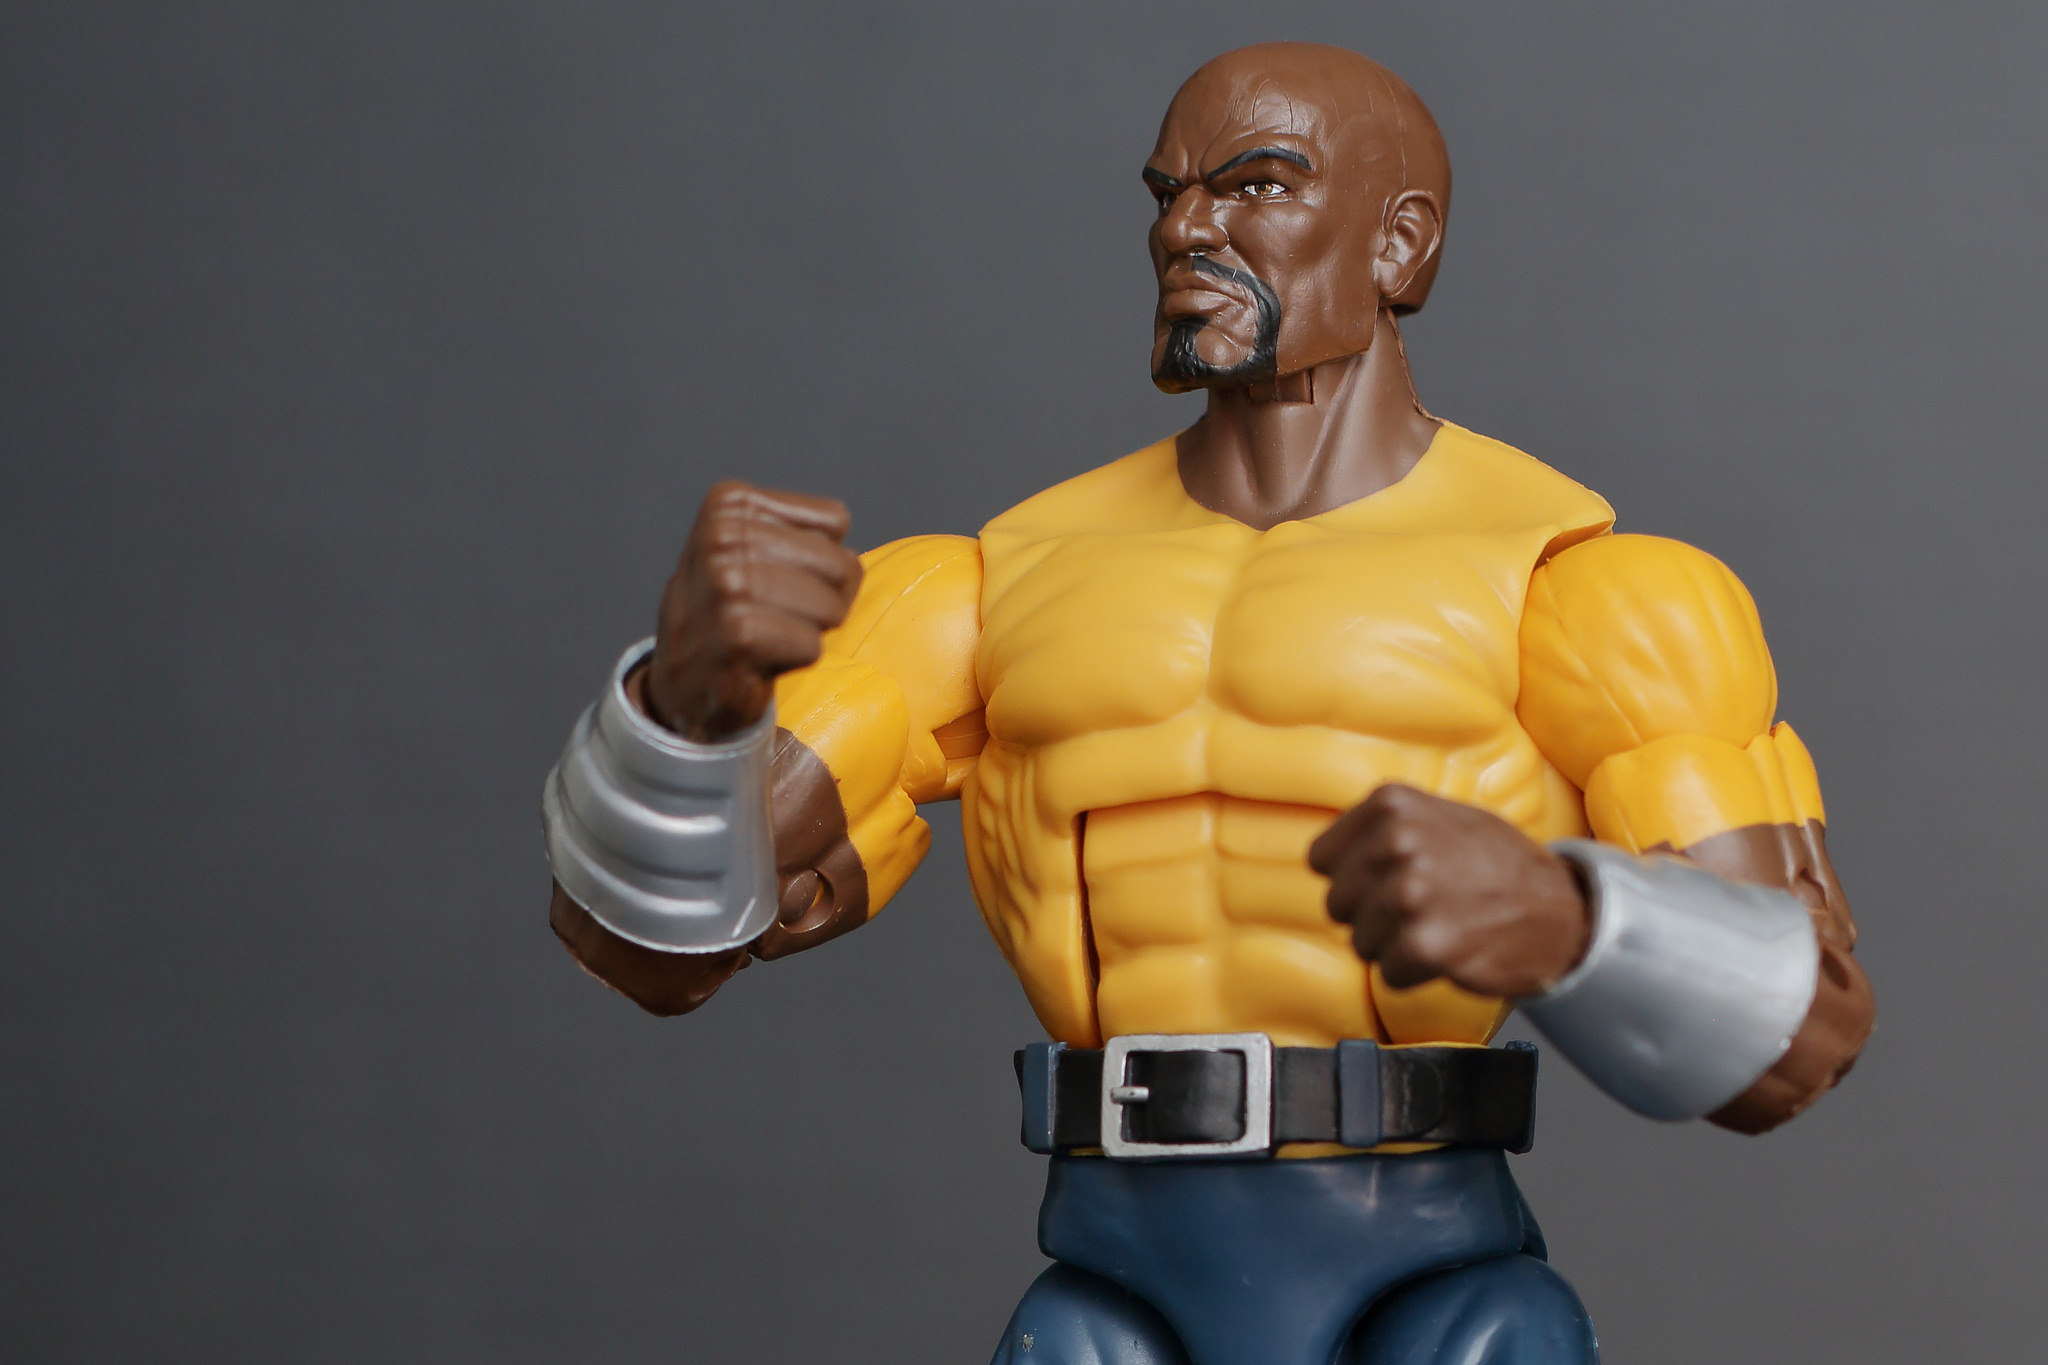 Luke Cage season 2 official action figure exclusively from Amazon